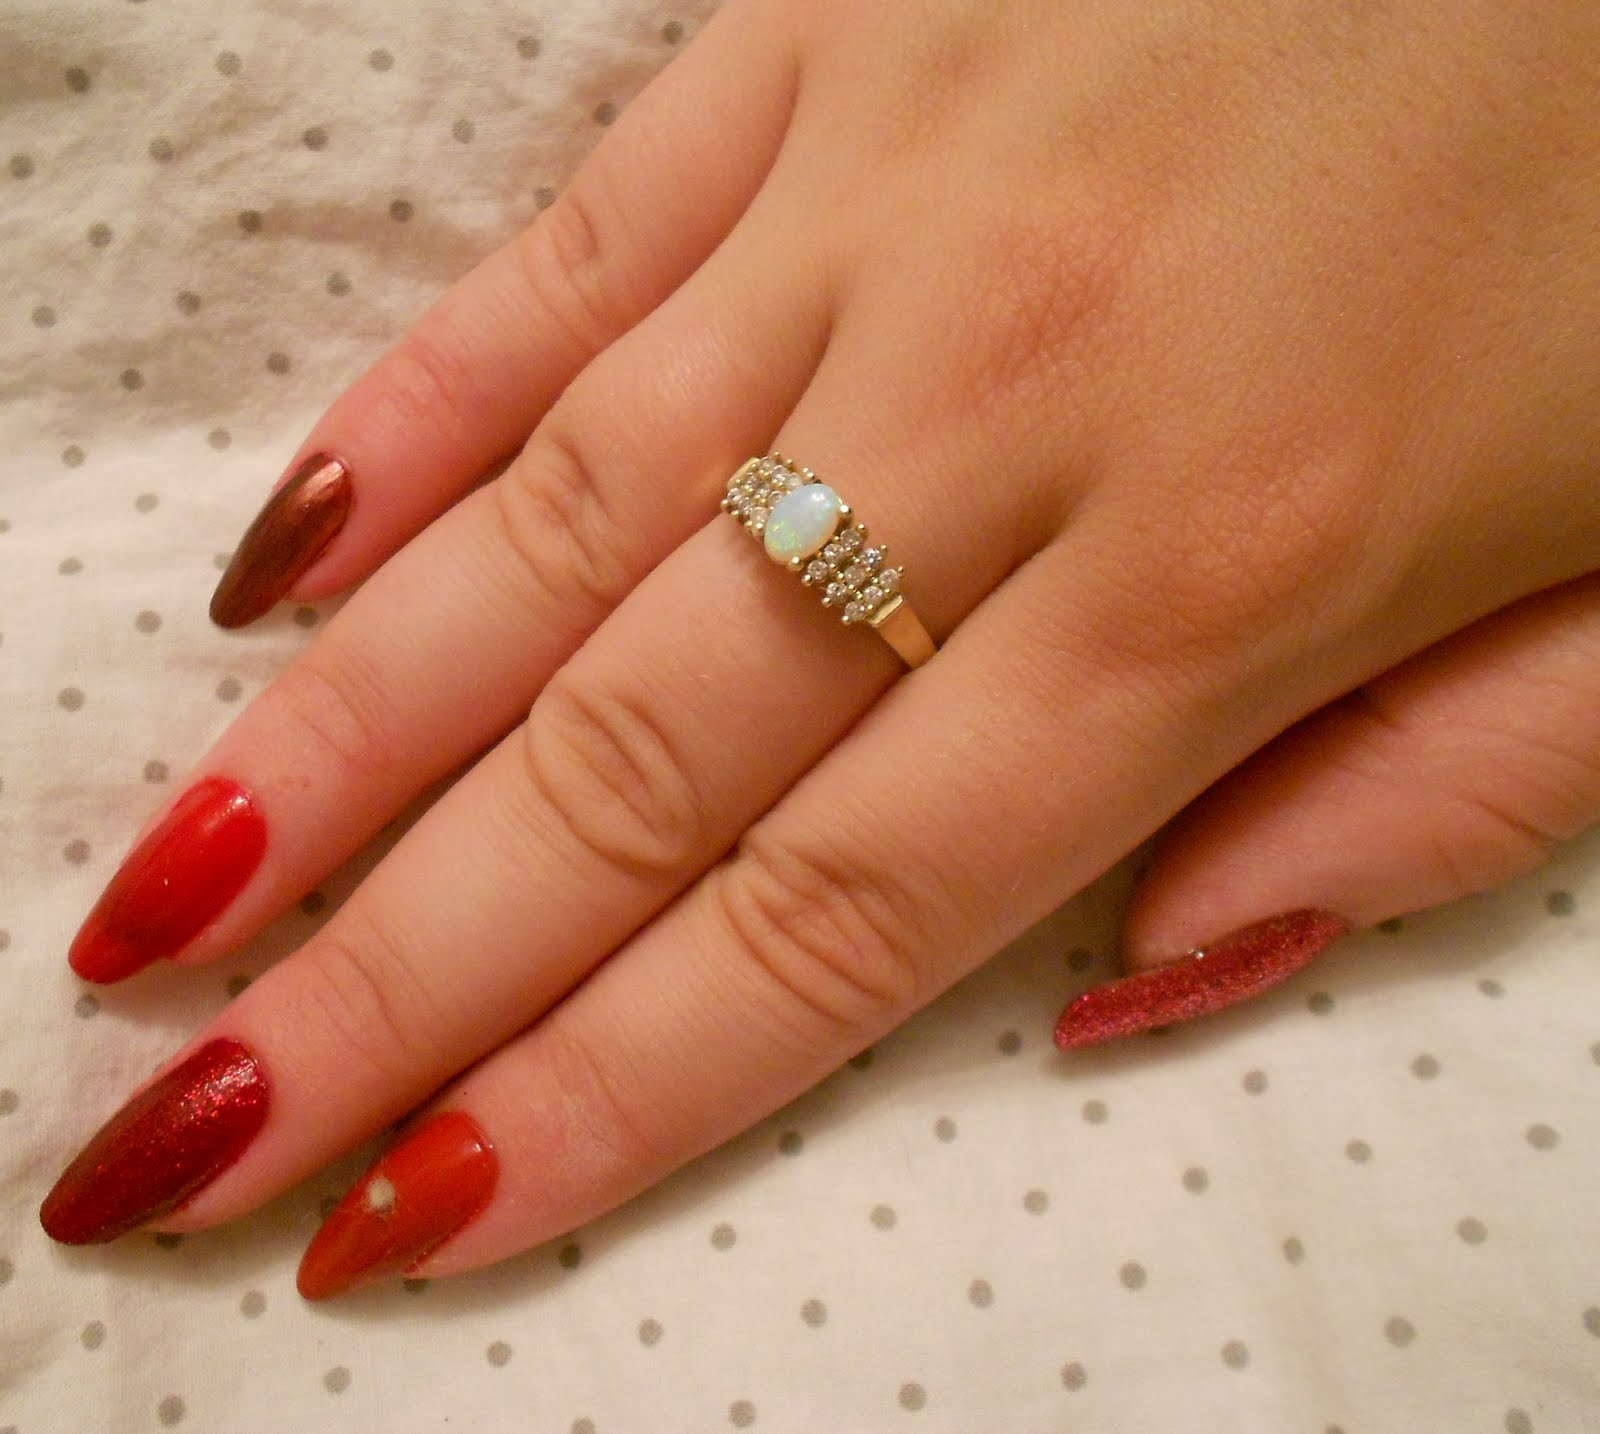 My Top 10 And Top 5 Nail Artists Who: The Nail Artista Extraordinaire: My Top 5 Favorite Red